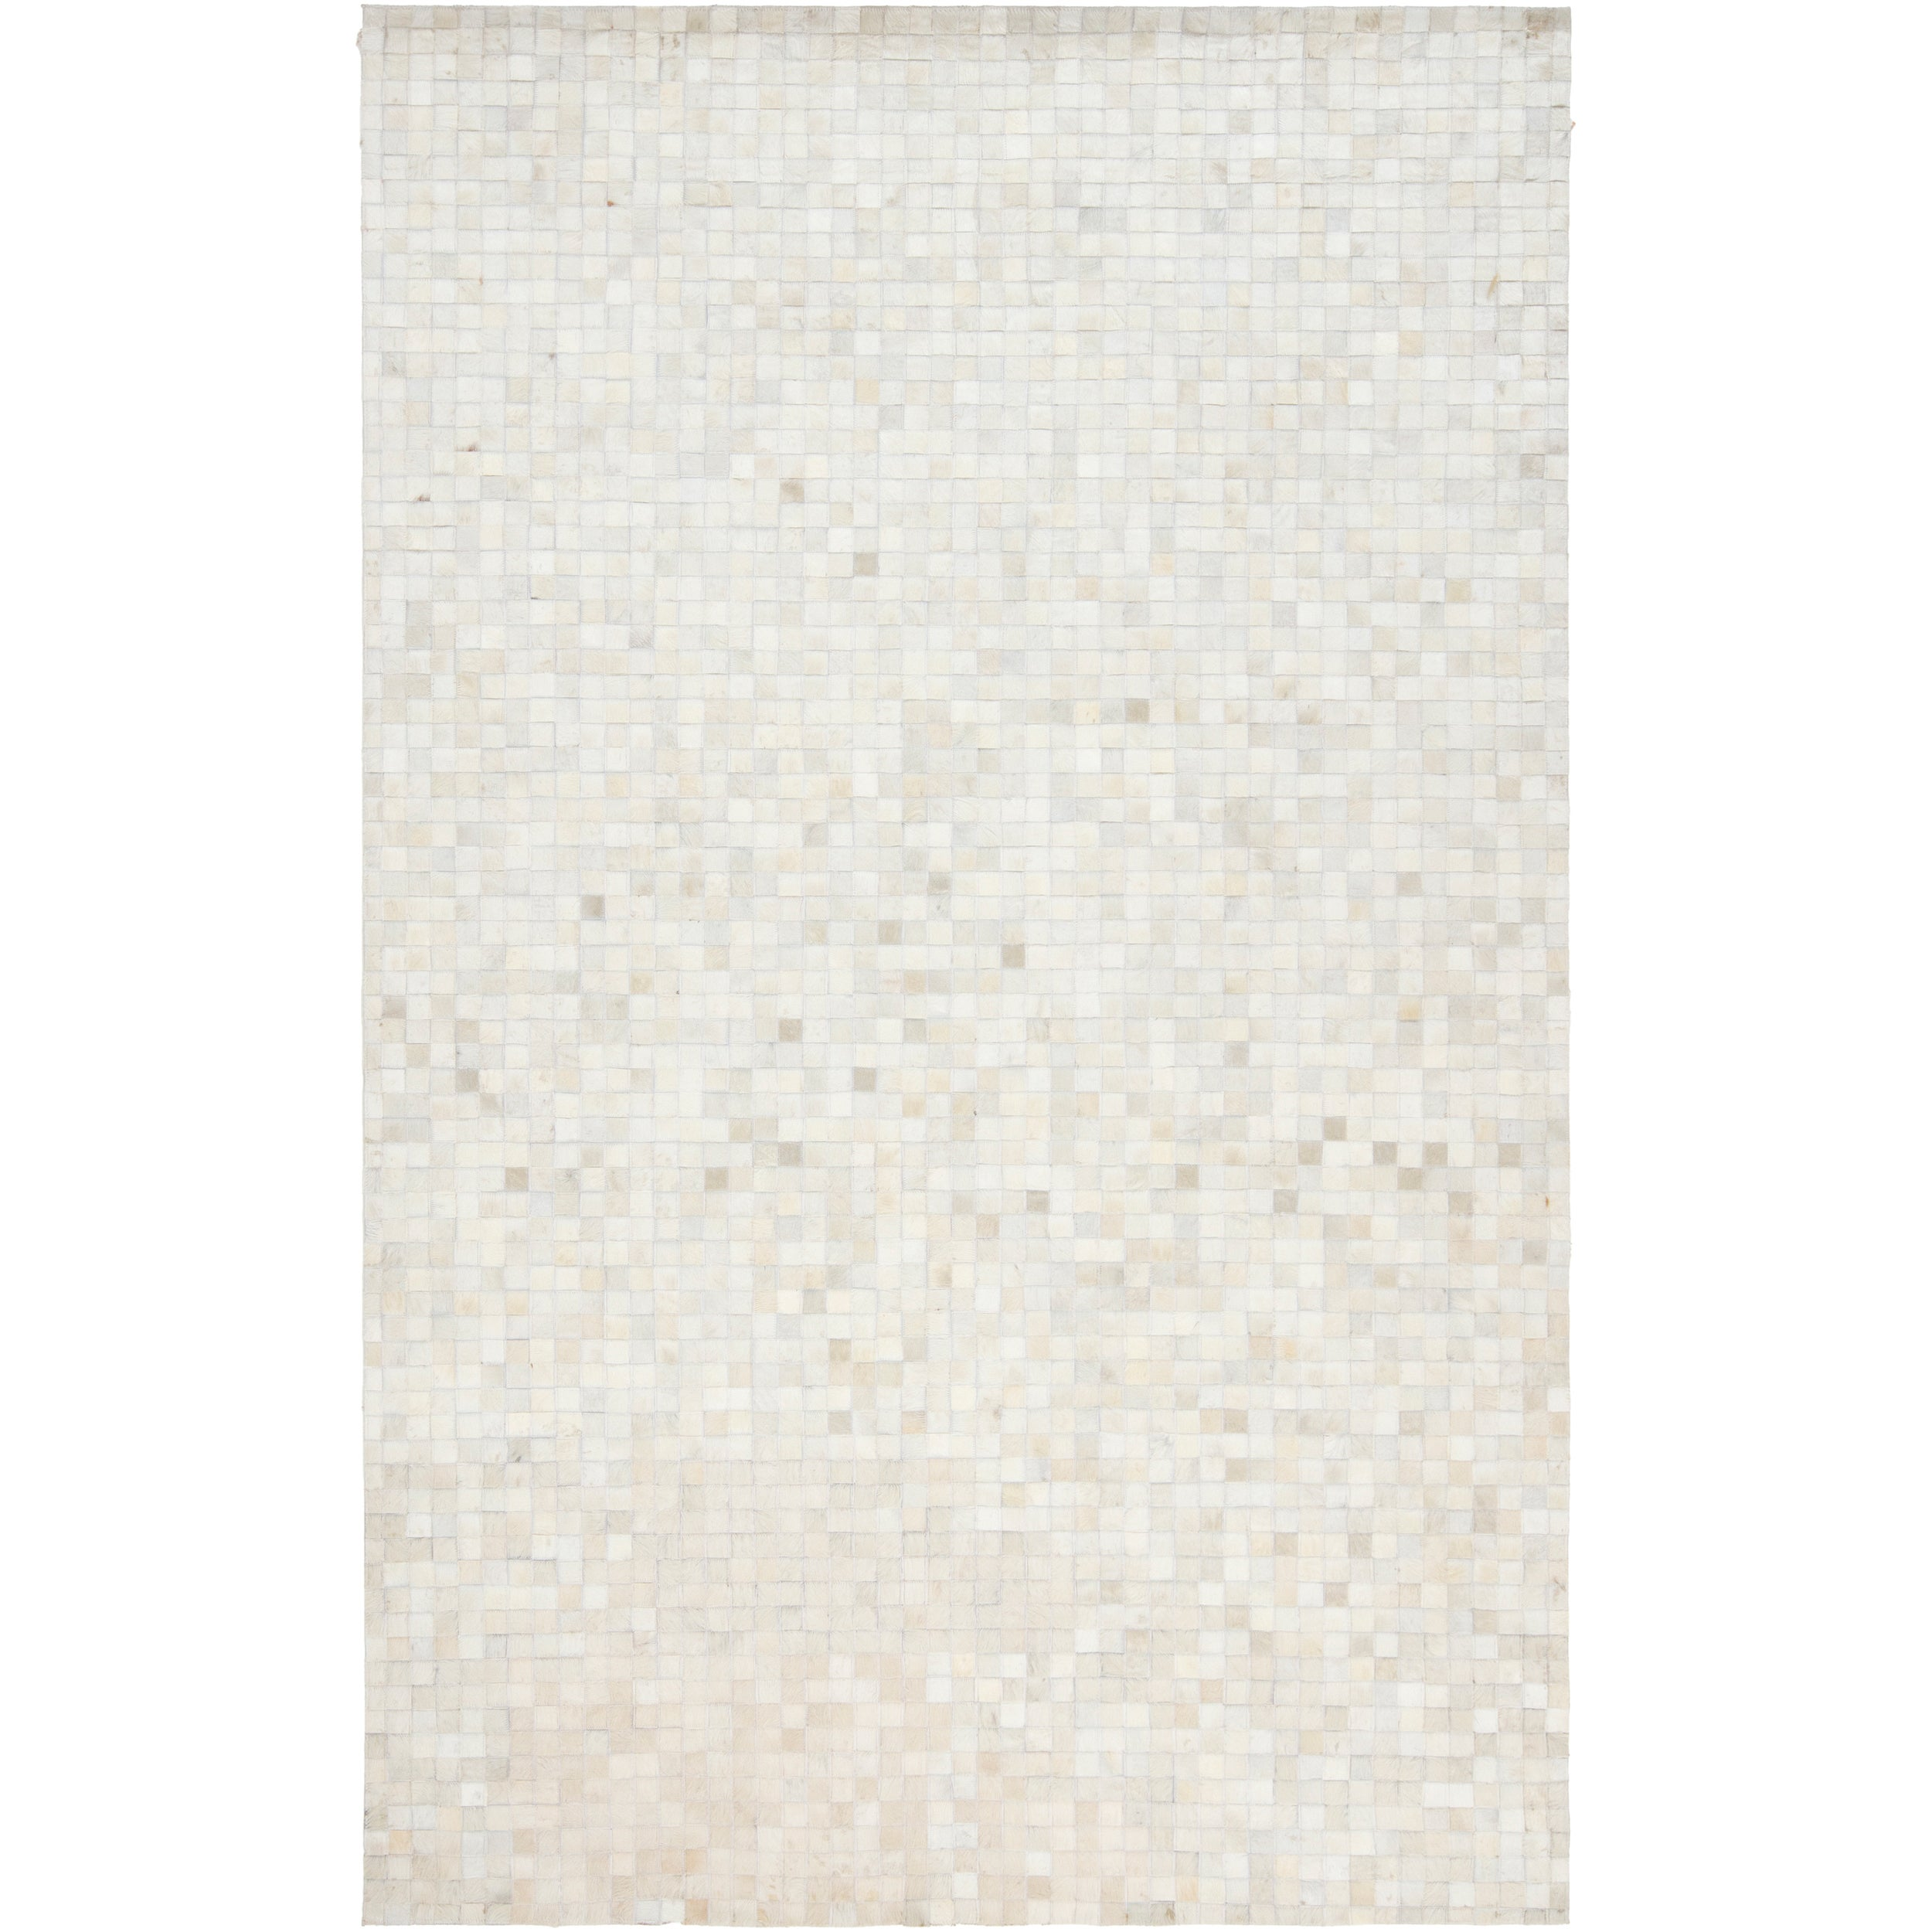 Hand-crafted White Leather Animal Hide Geometric Squares Avenal Rug (2' x 3')